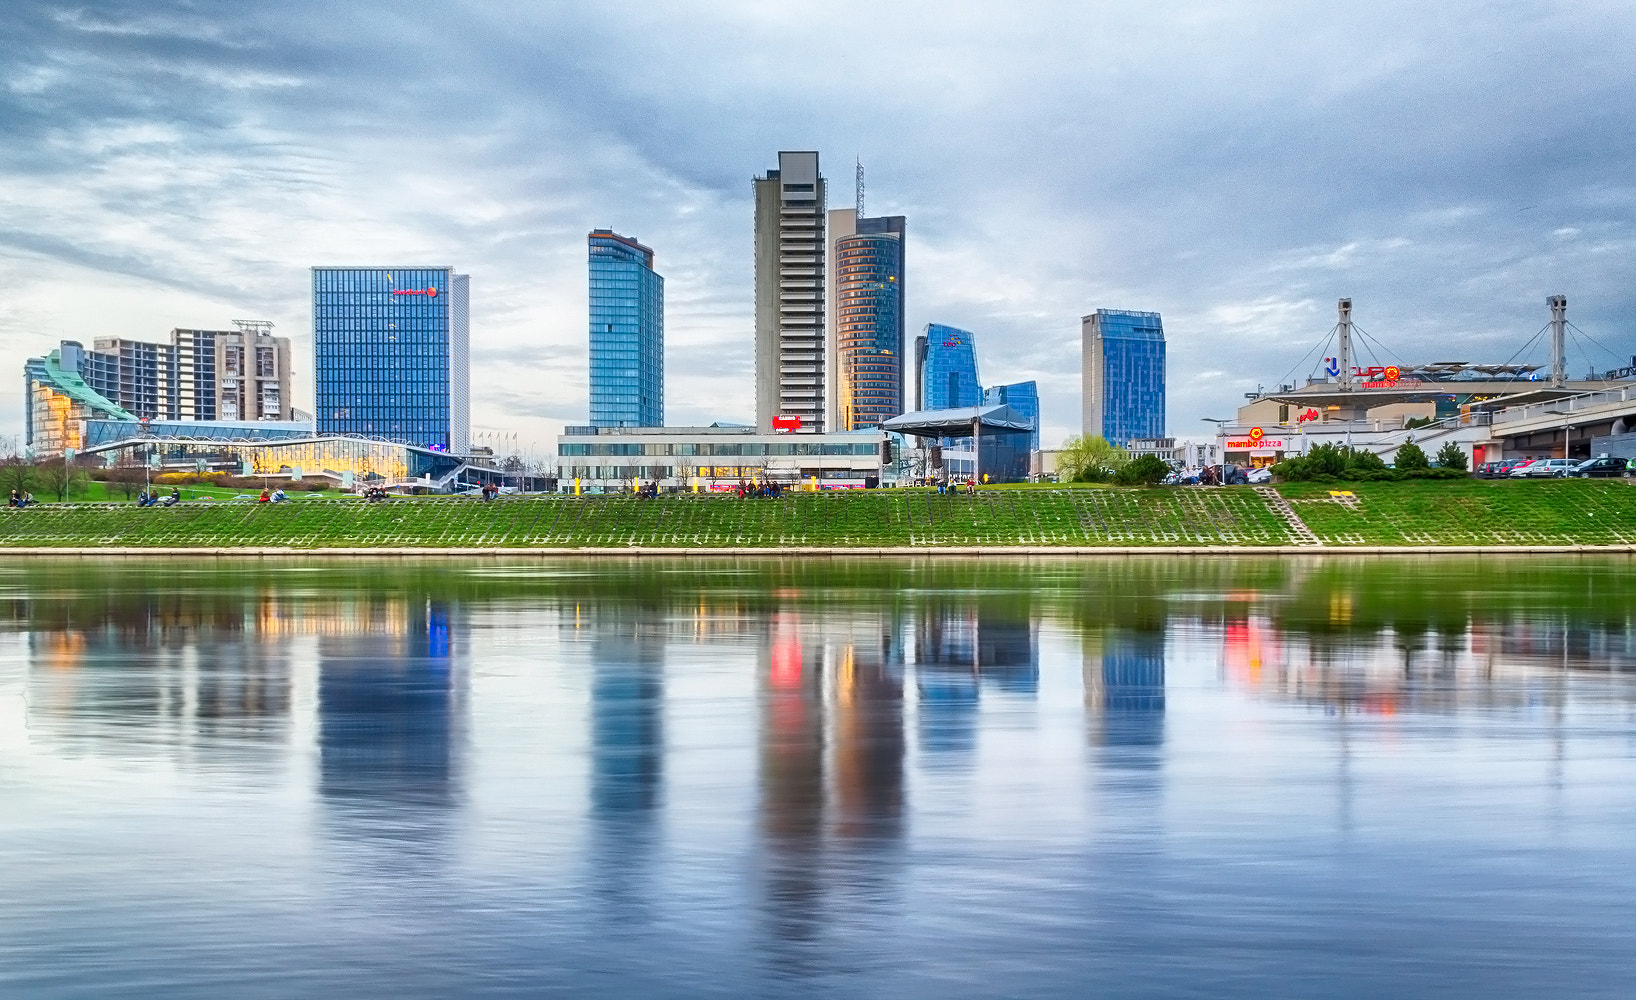 Photograph The 21st Century in Vilnius by Norbert Durko on 500px